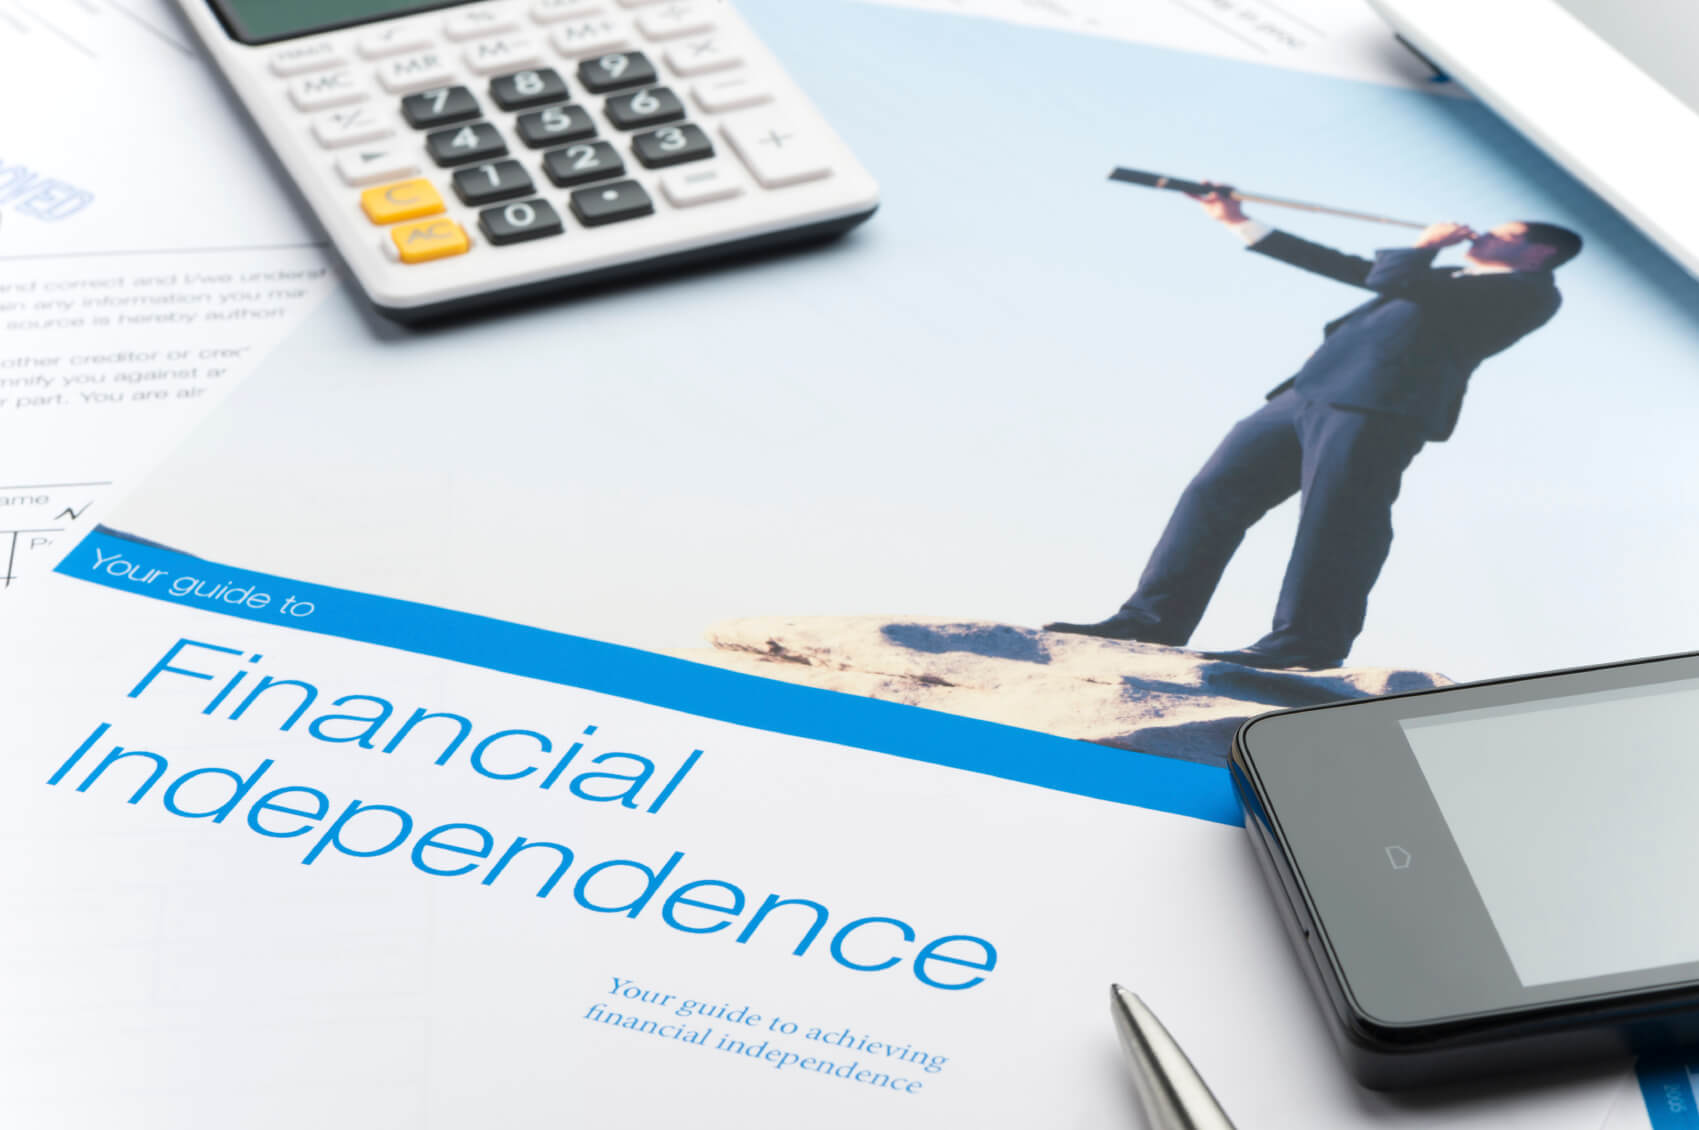 Focusing on financial independence